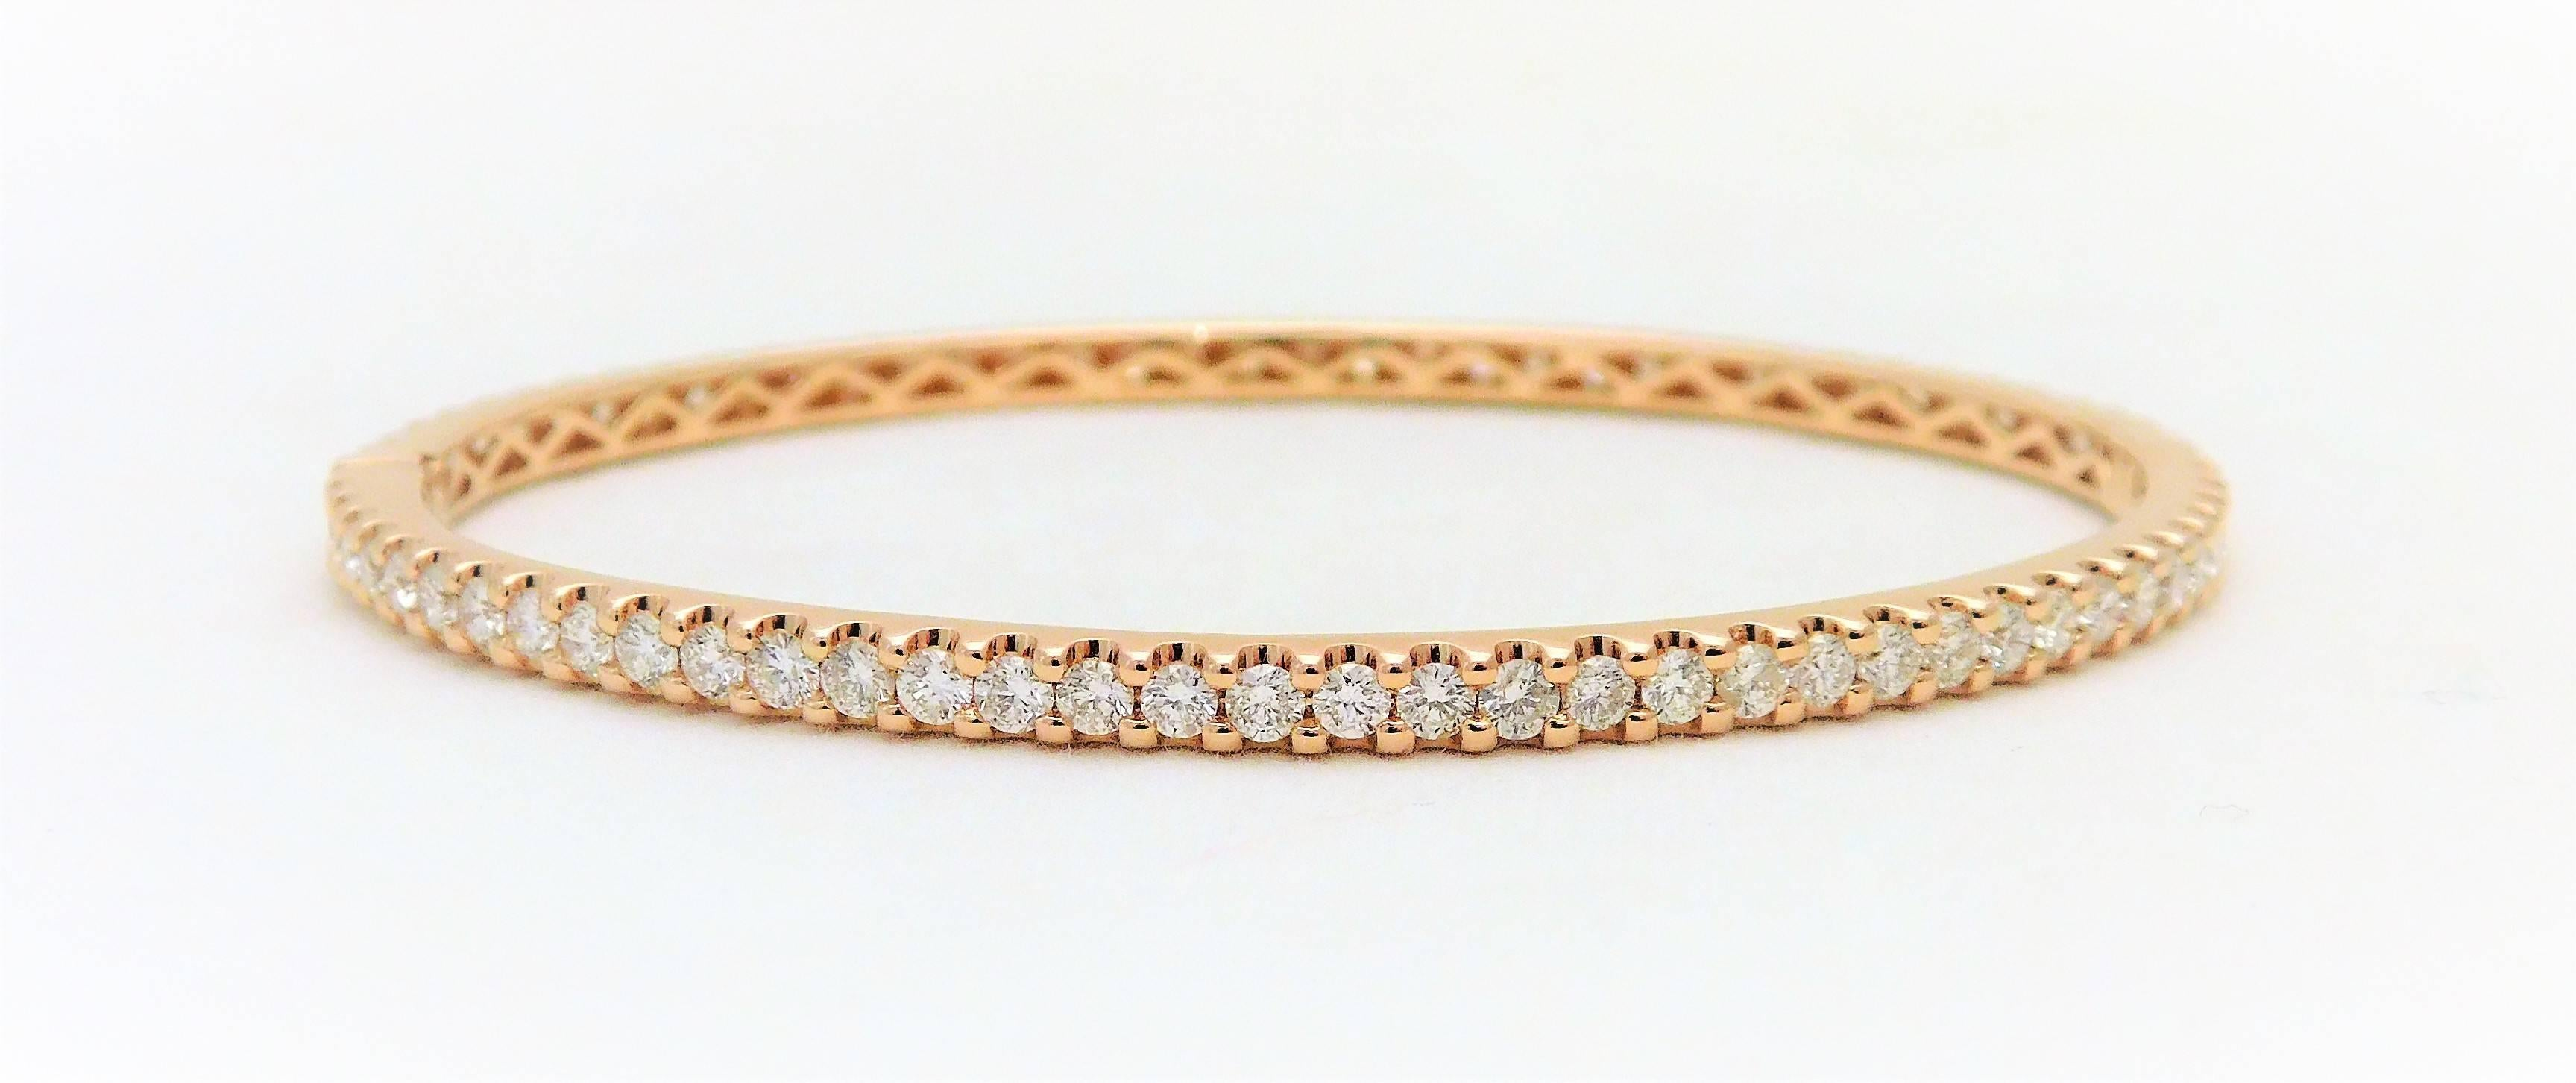 eternity tennis bangles gold bracelets classic for bracelet white sale diamond to yellow online image or